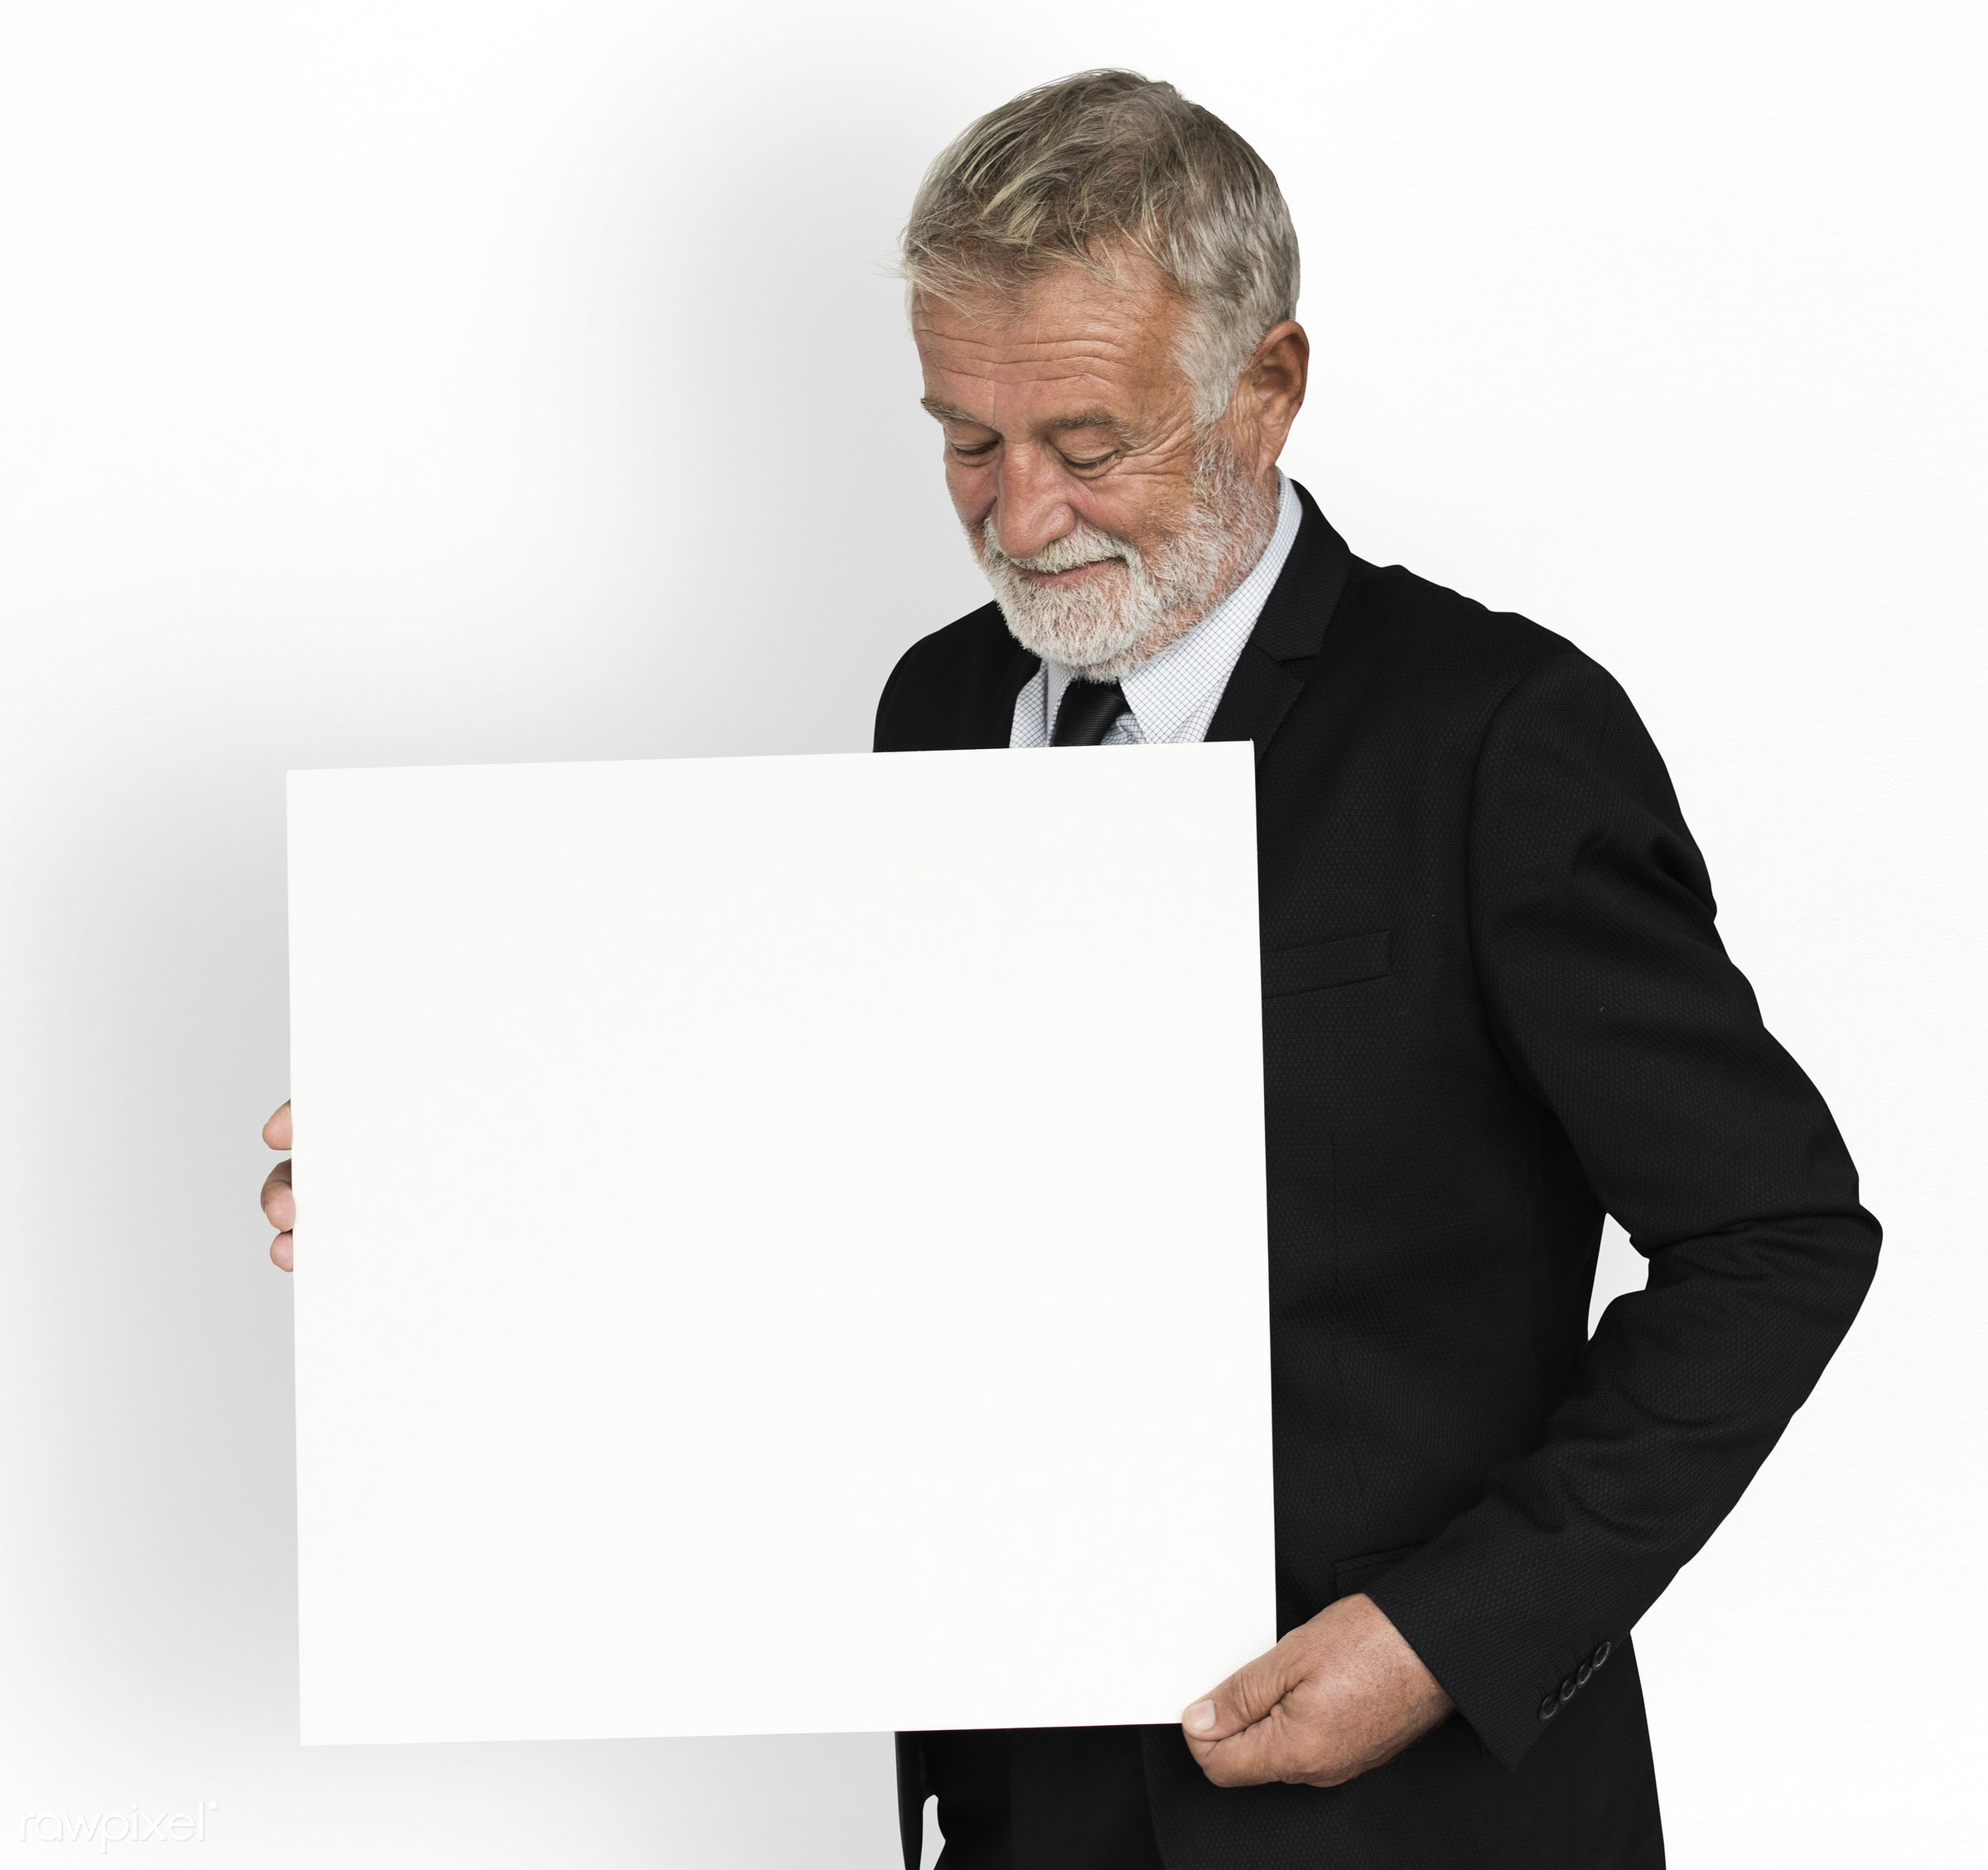 studio, expression, person, holding, show, briefing, people, caucasian, smile, smiling, formal attire, isolated, business...